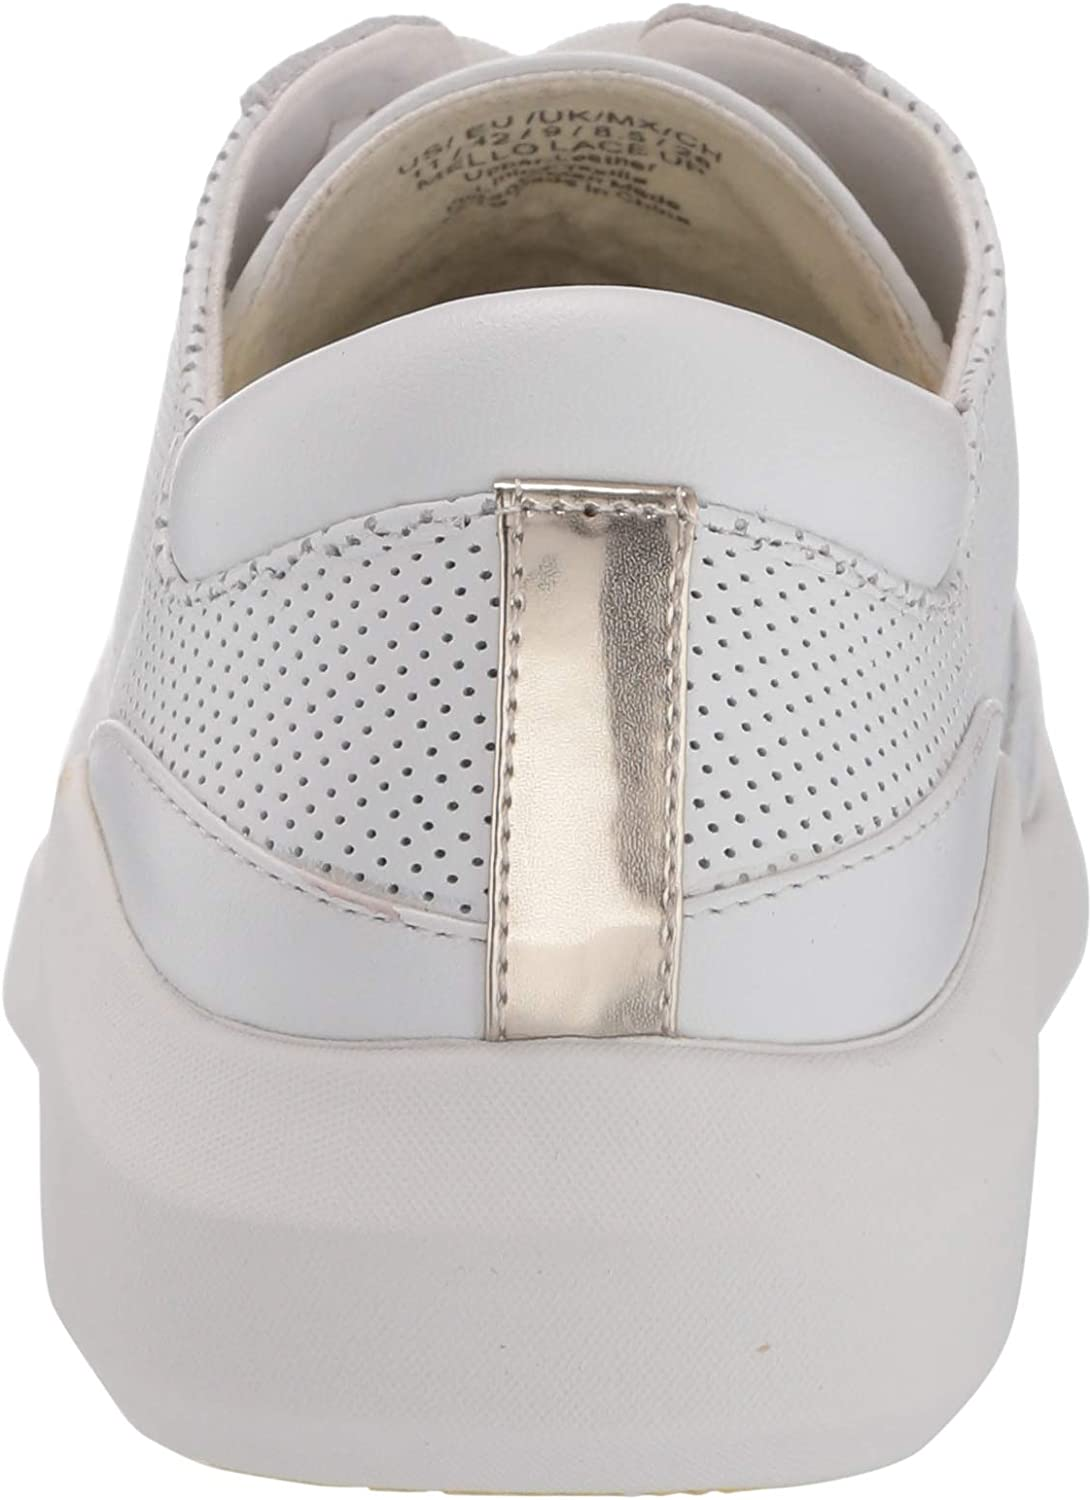 Kenneth Cole New York Women's Lace Up Sneaker White